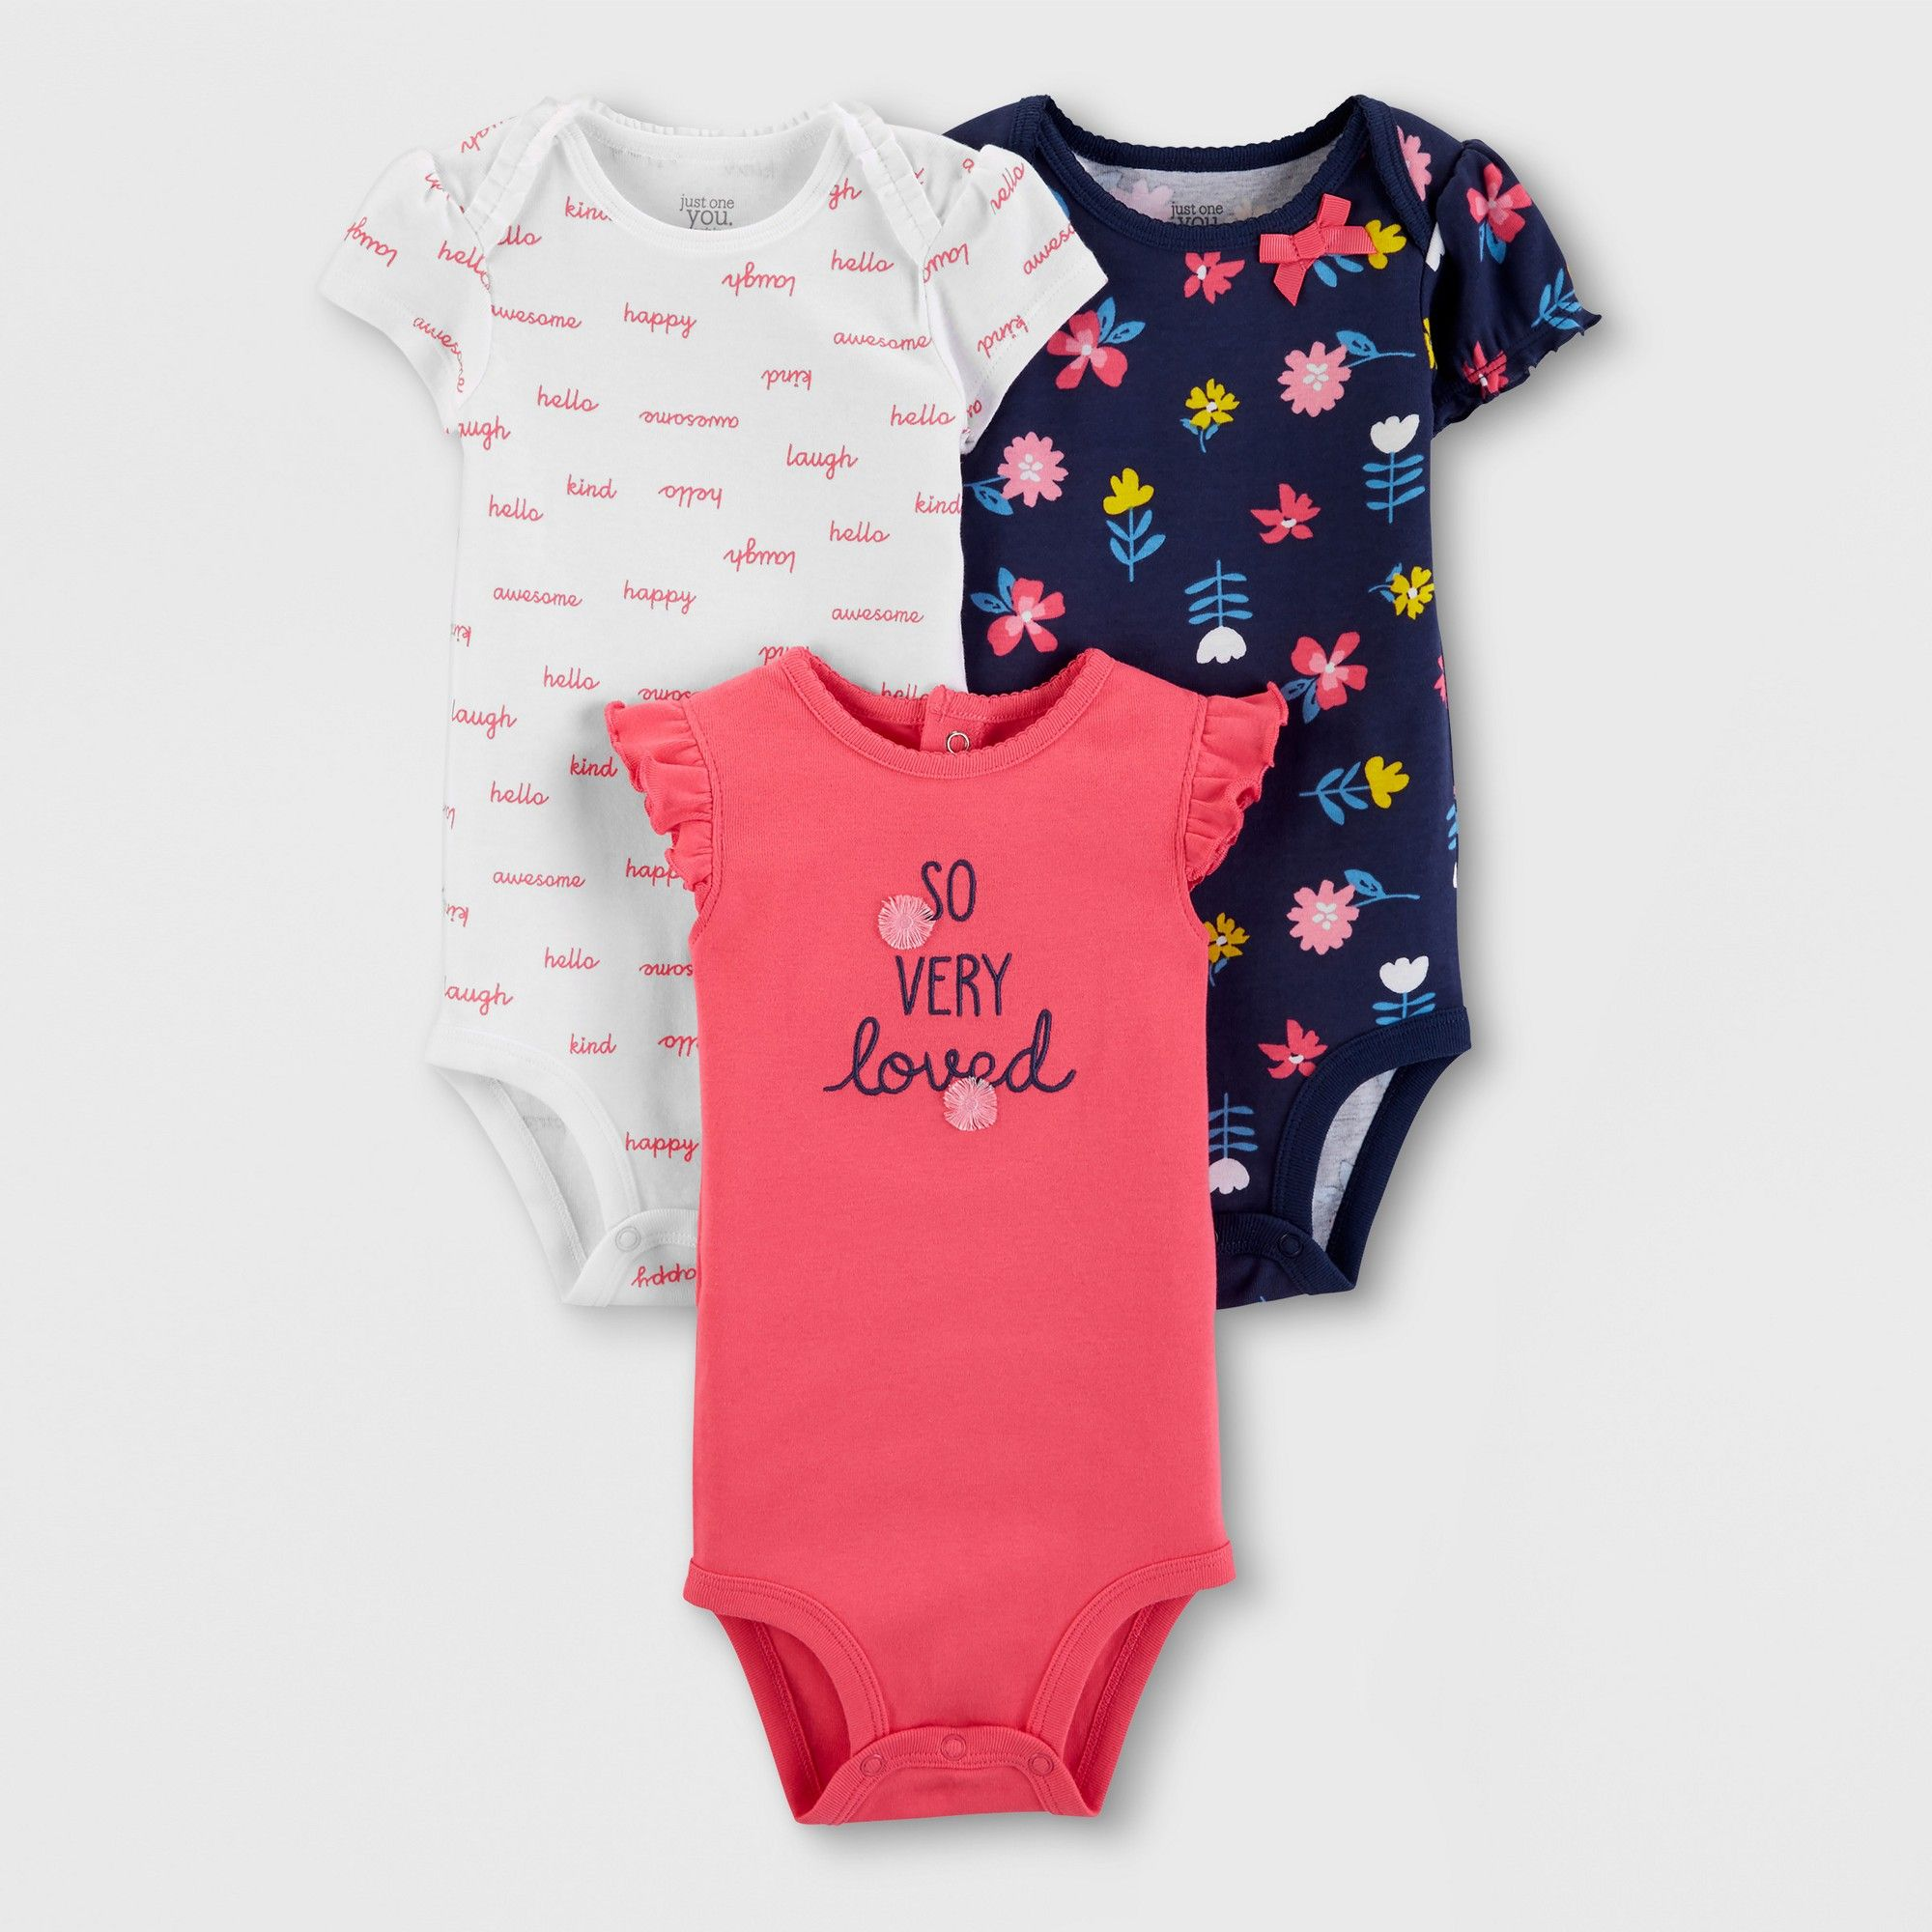 I/'m Going To Be a Big Sister Pink Detail Elephants Baby Grow Gro BodySuit Vest